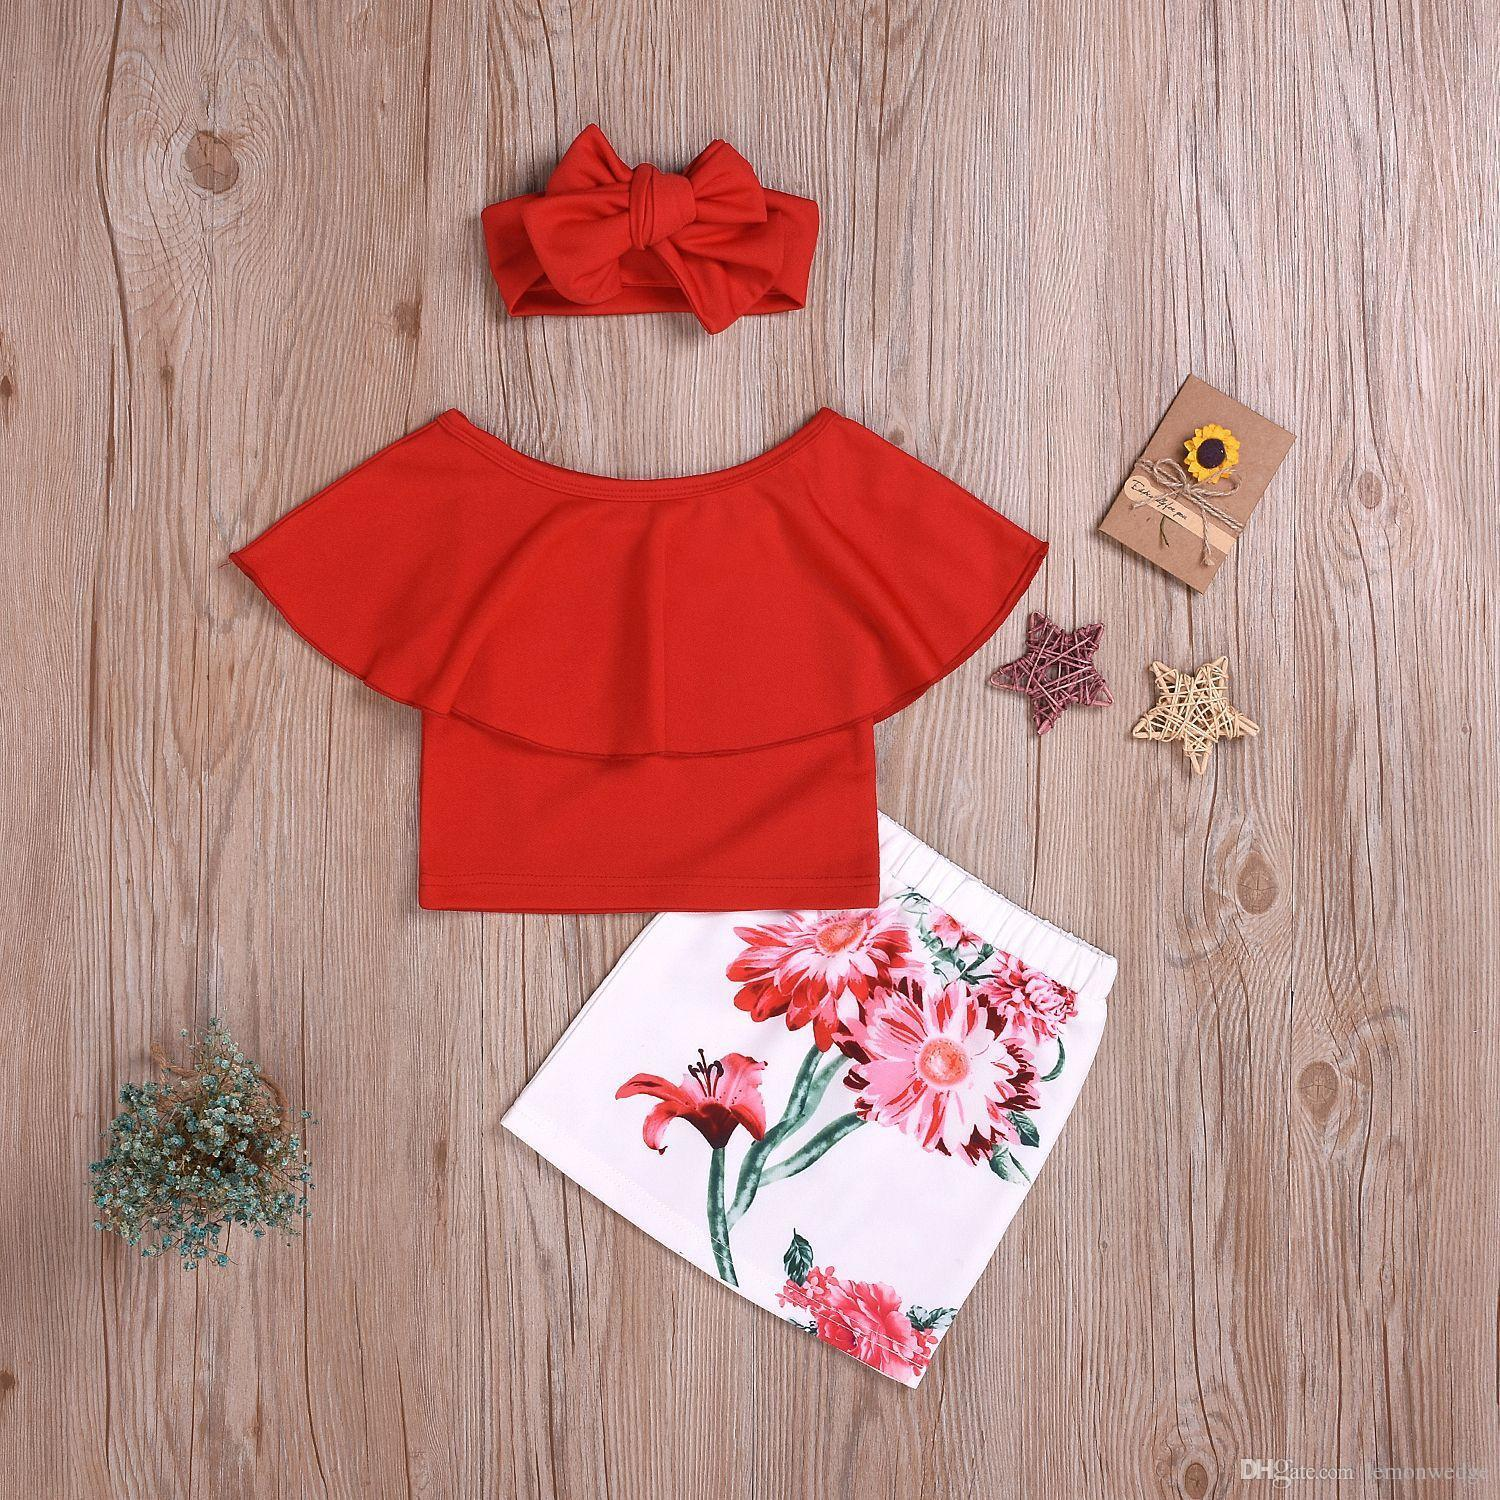 Newborn Toddler Baby Girls clothes print Floral Skirts Headband round neck Top kids Outfit